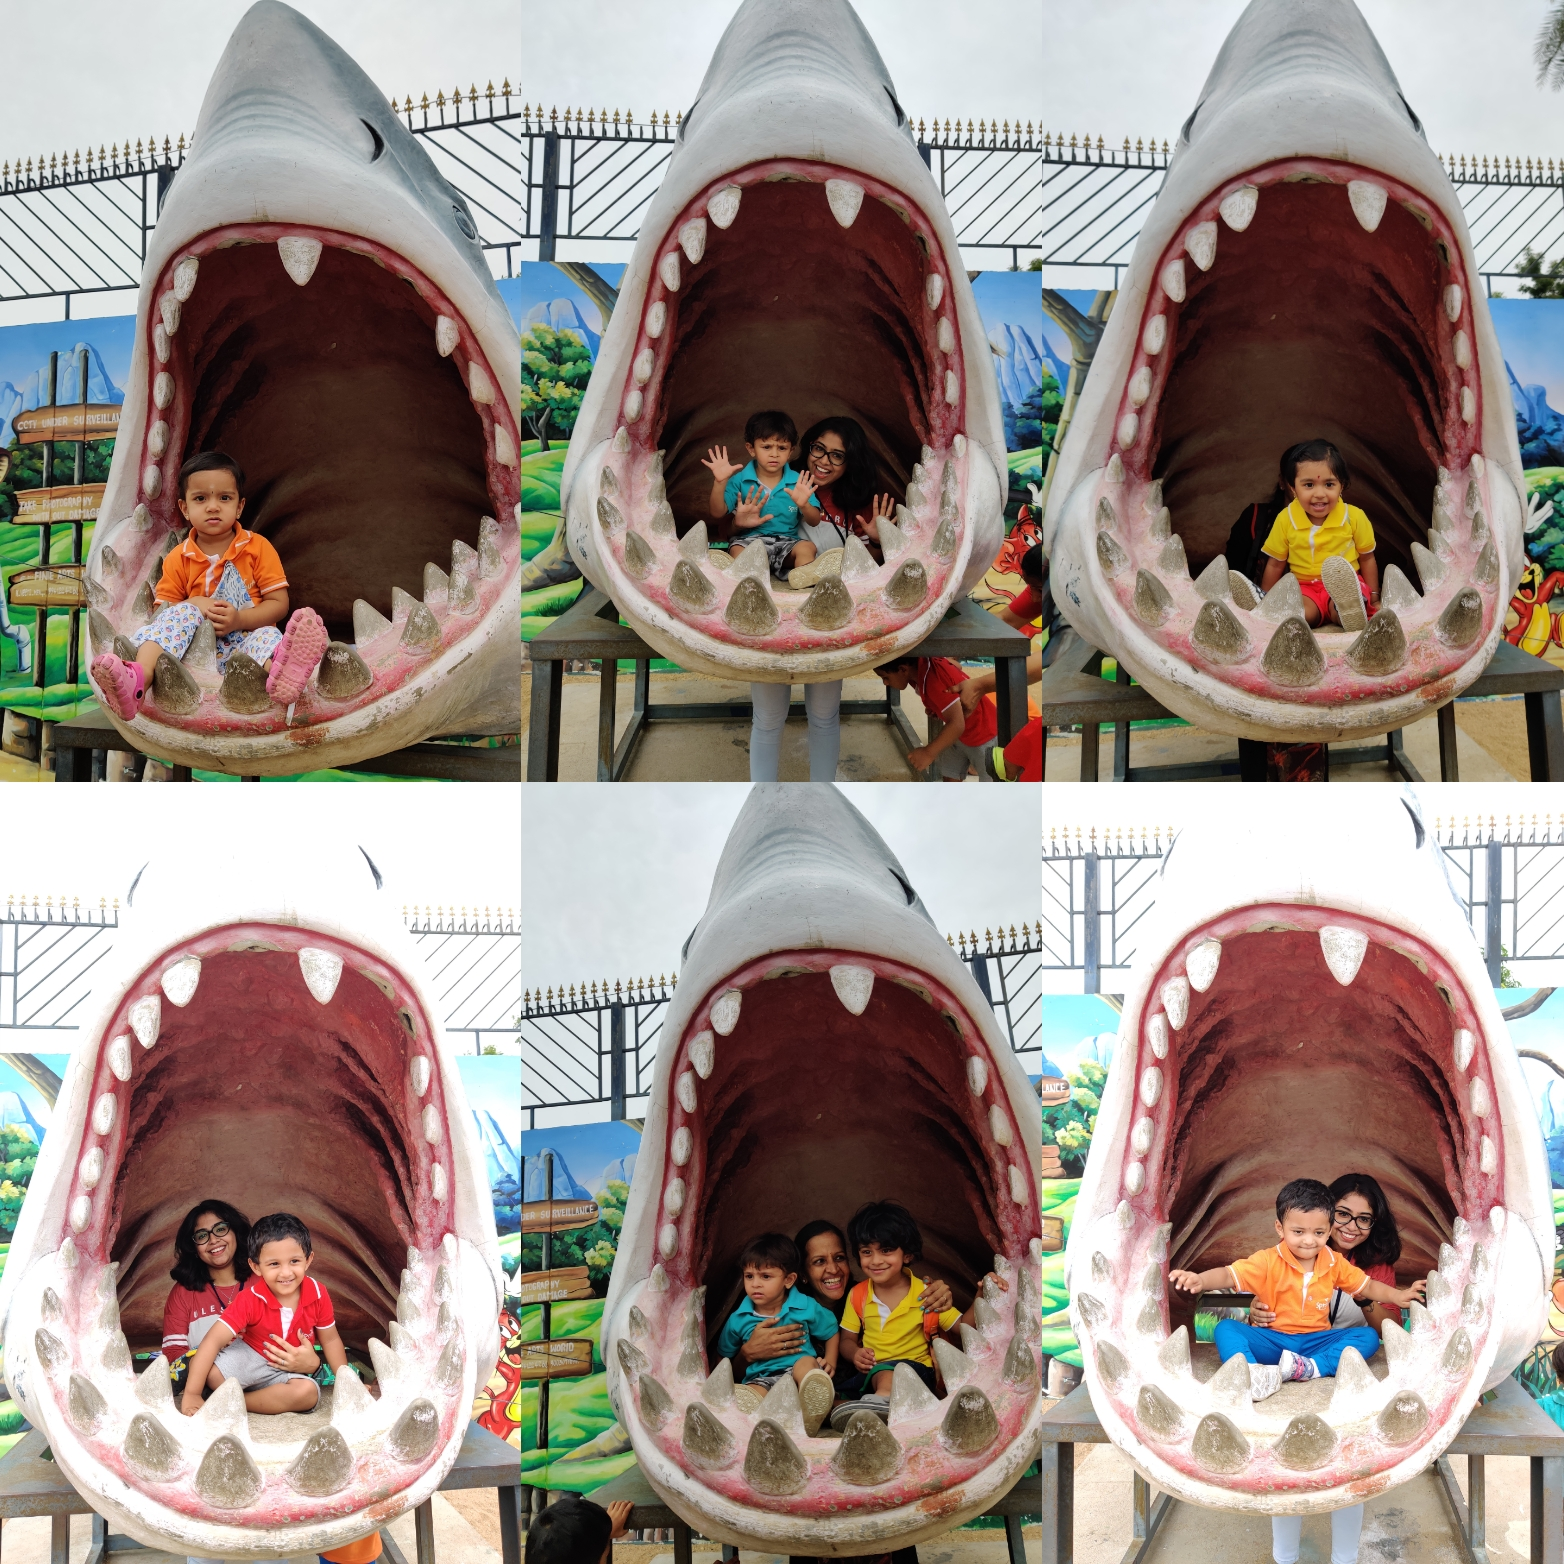 What is inside a shark - Let_s explore!.